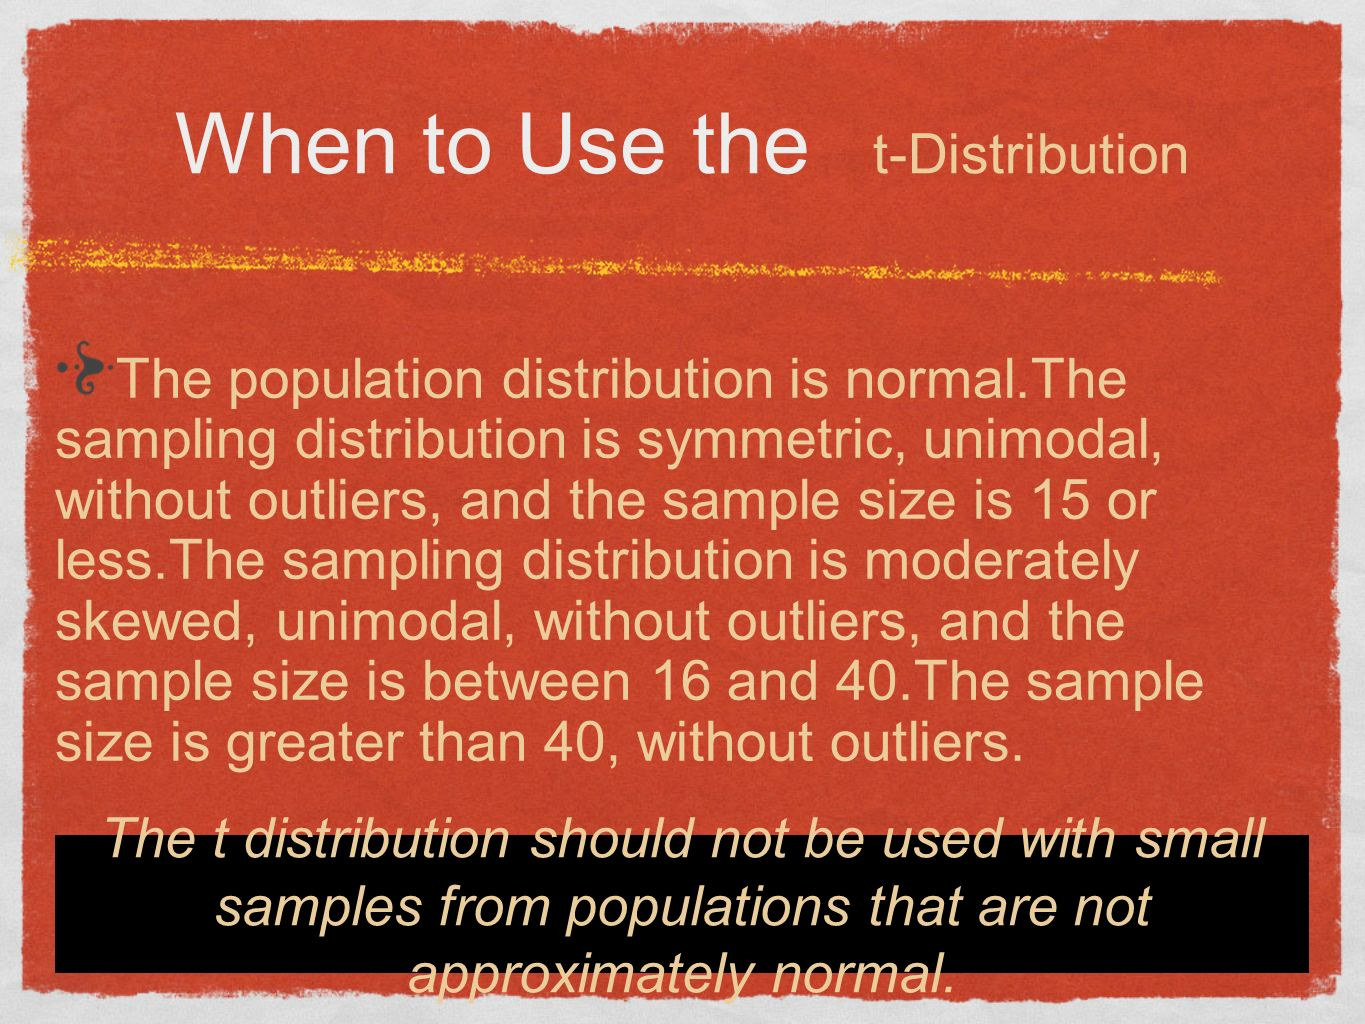 When to Use the t-Distribution T he population distribution is normal.The sampling distribution is symmetric, unimodal, without outliers, and the sample size is 15 or less.The sampling distribution is moderately skewed, unimodal, without outliers, and the sample size is between 16 and 40.The sample size is greater than 40, without outliers.